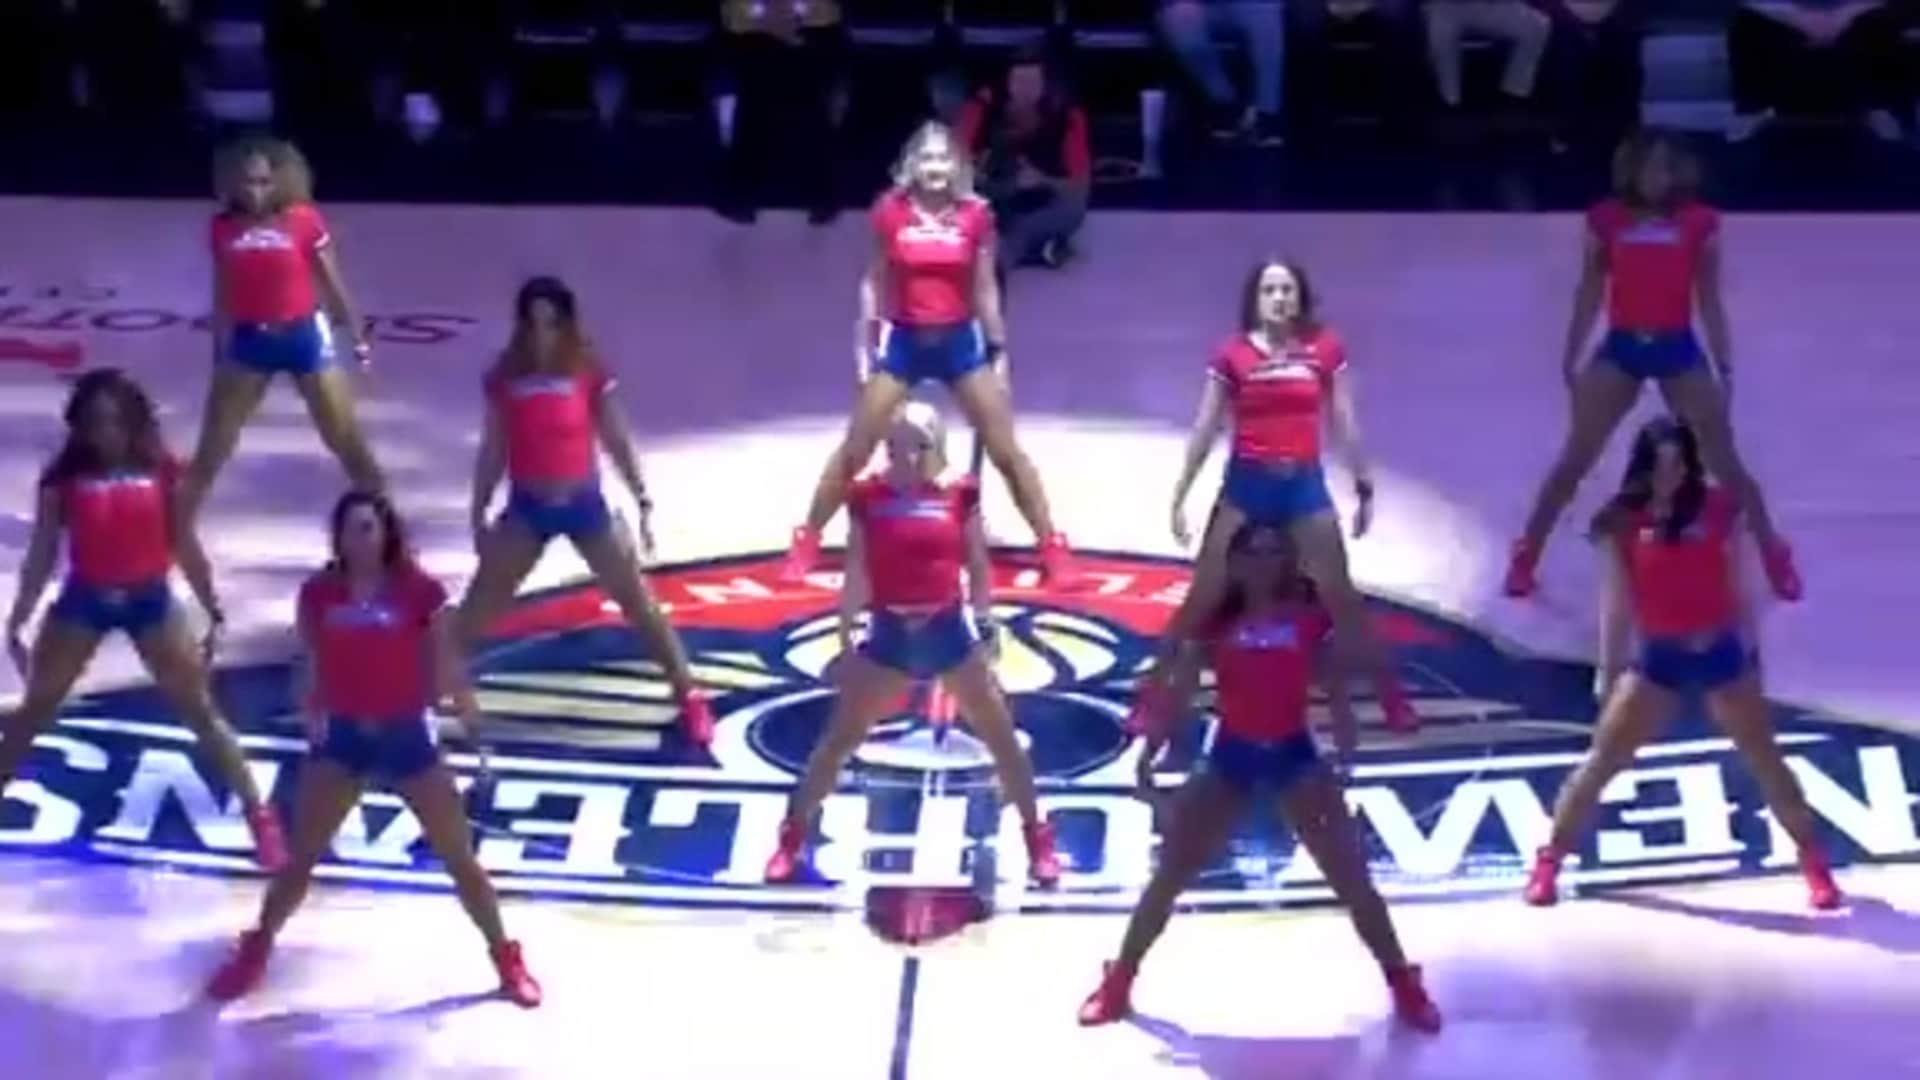 Entertainment: Pelicans Dance Team 3rd quarter performance - December 1 vs. Oklahoma City Thunder